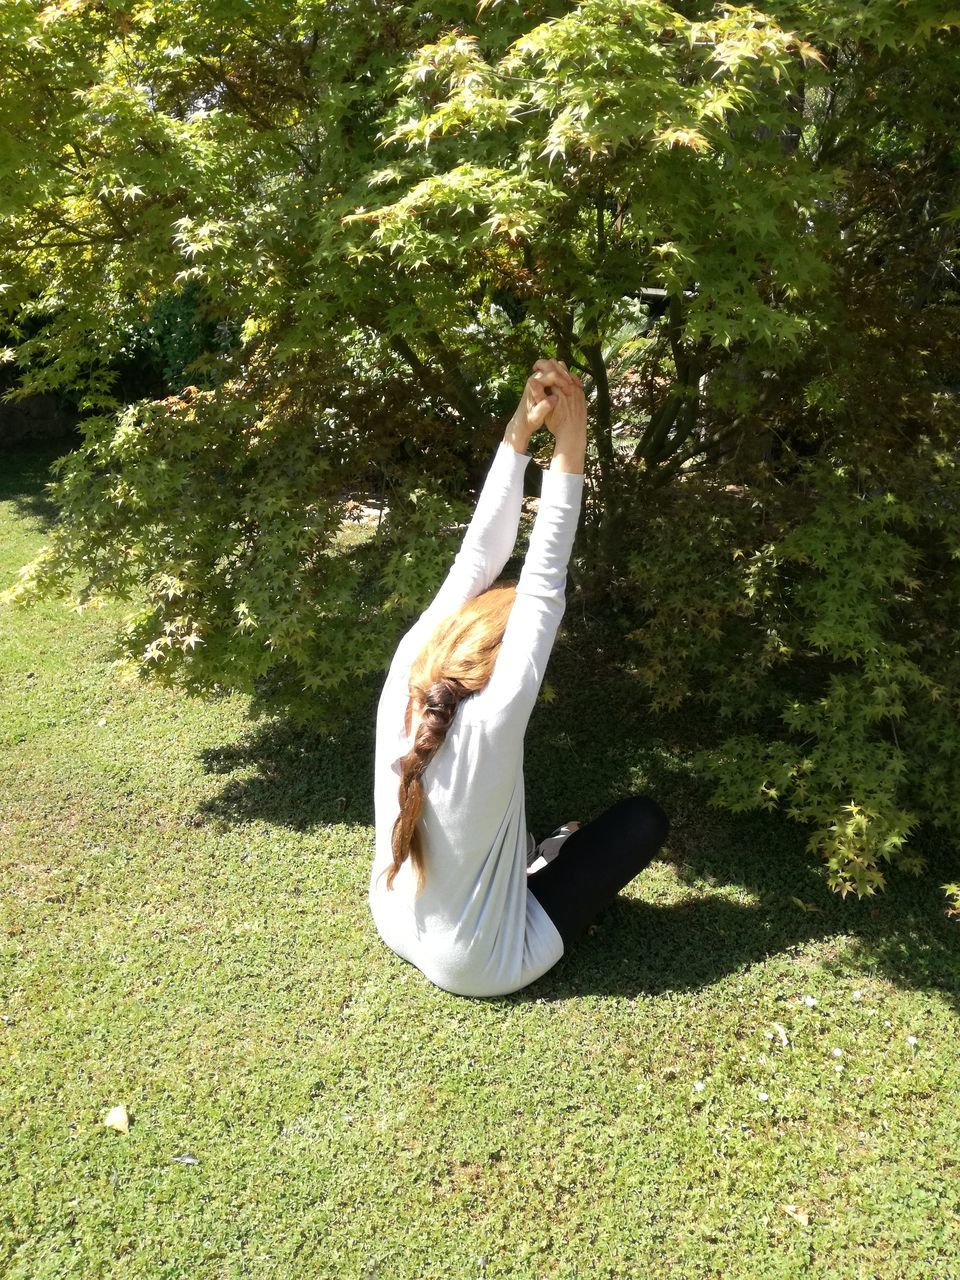 full length, yoga, exercising, grass, day, green color, one person, barefoot, healthy lifestyle, tree, young adult, balance, leisure activity, sunlight, outdoors, women, nature, young women, flexibility, real people, one woman only, adults only, adult, people